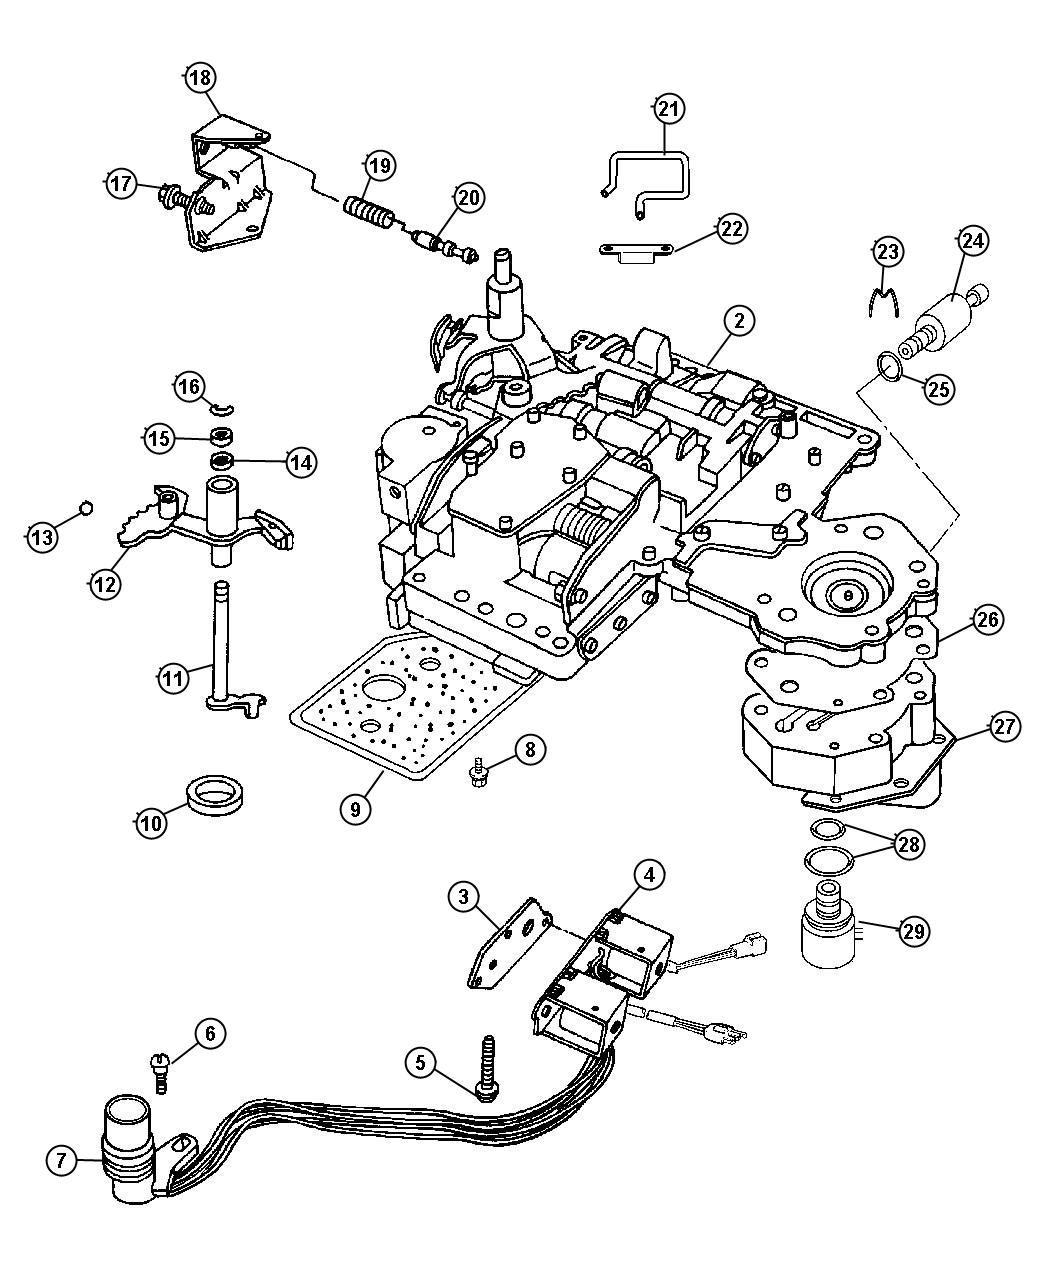 Surprising Chrysler 727 Transmission Diagram Auto Electrical Wiring Diagram Wiring Cloud Oideiuggs Outletorg